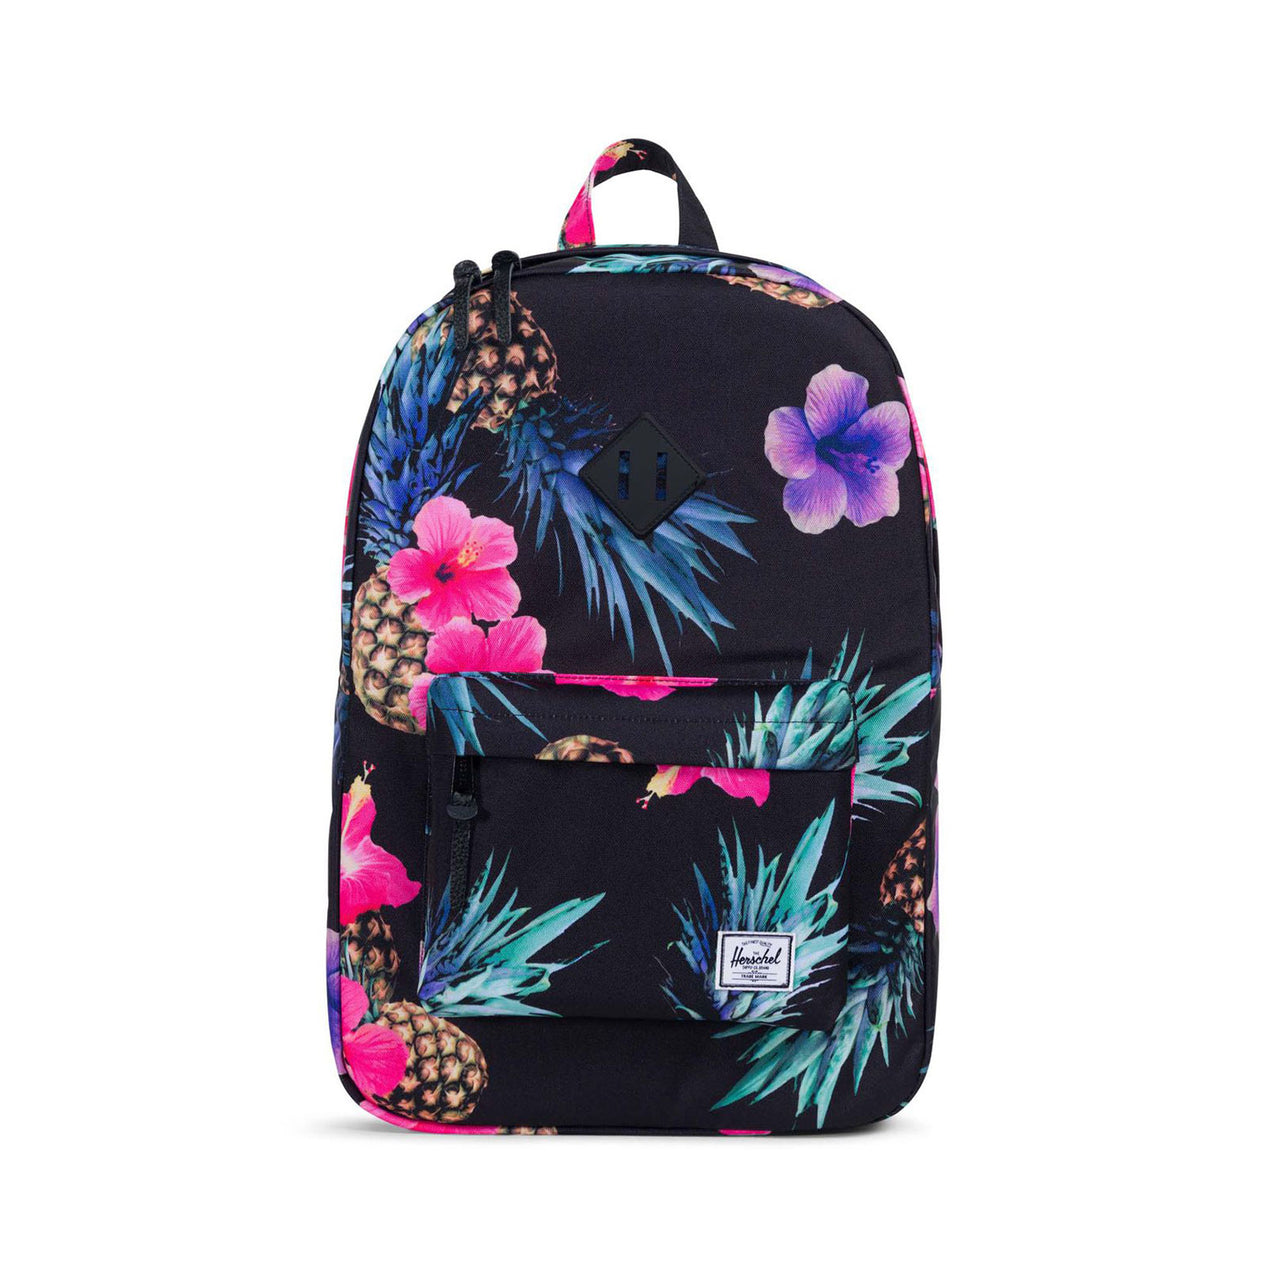 Herschel Supply Co. Heritage Backpack Black Pineapple - Black Rubber ... de3f12a77f696